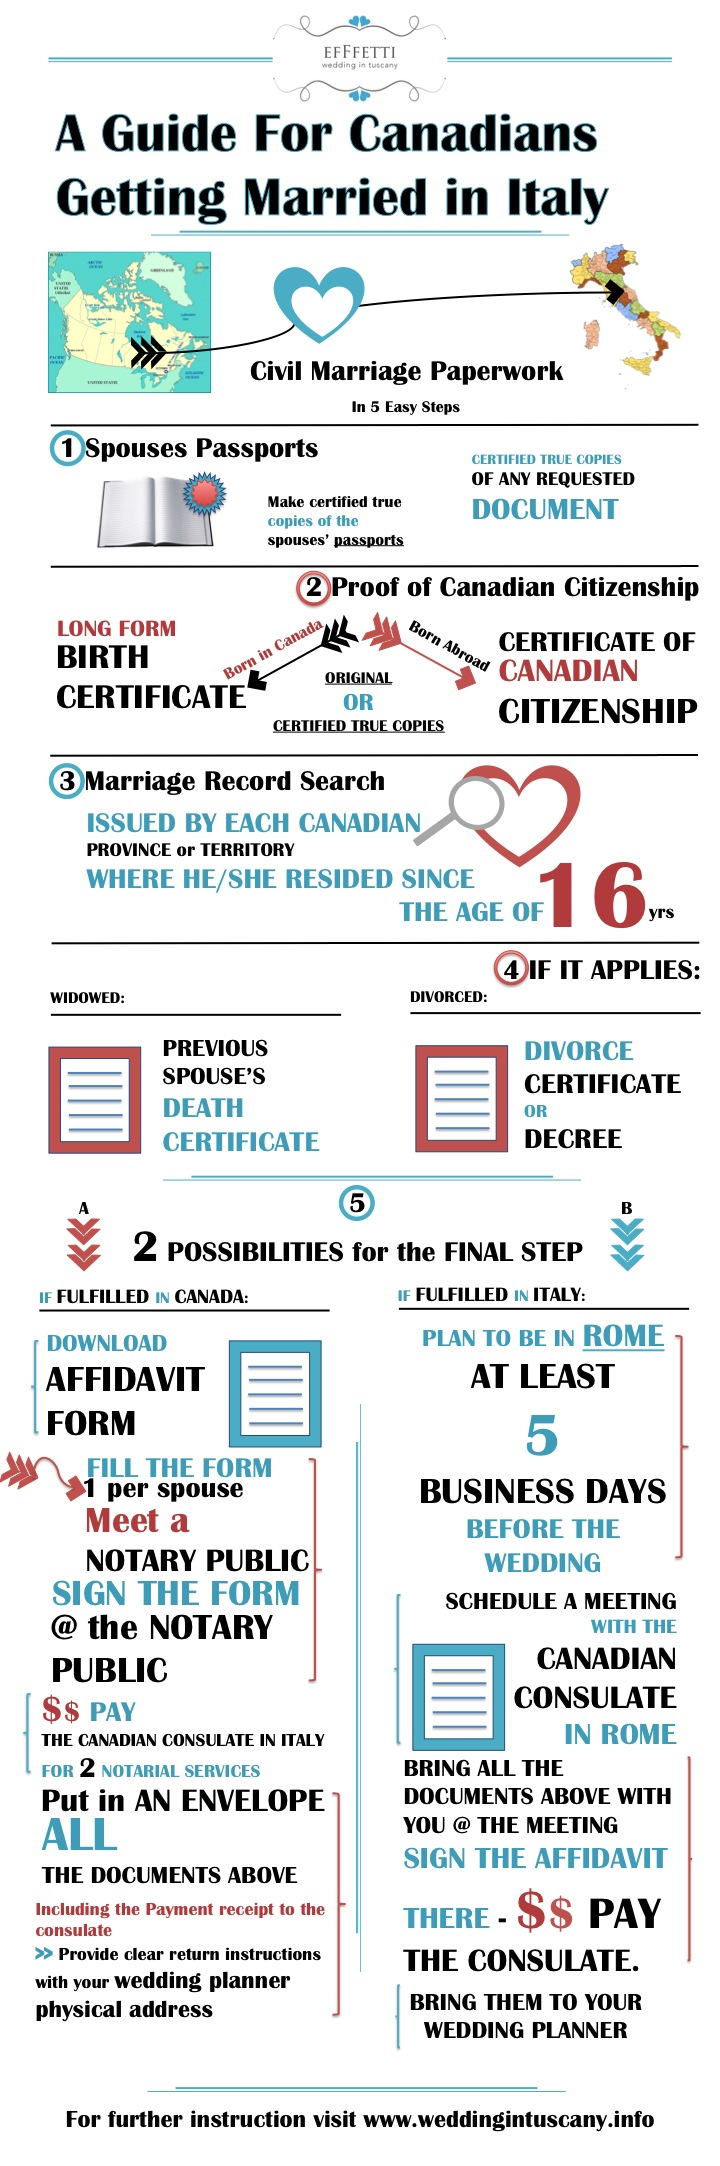 CANADIANS getting married in Italy INFOGRAPHIC